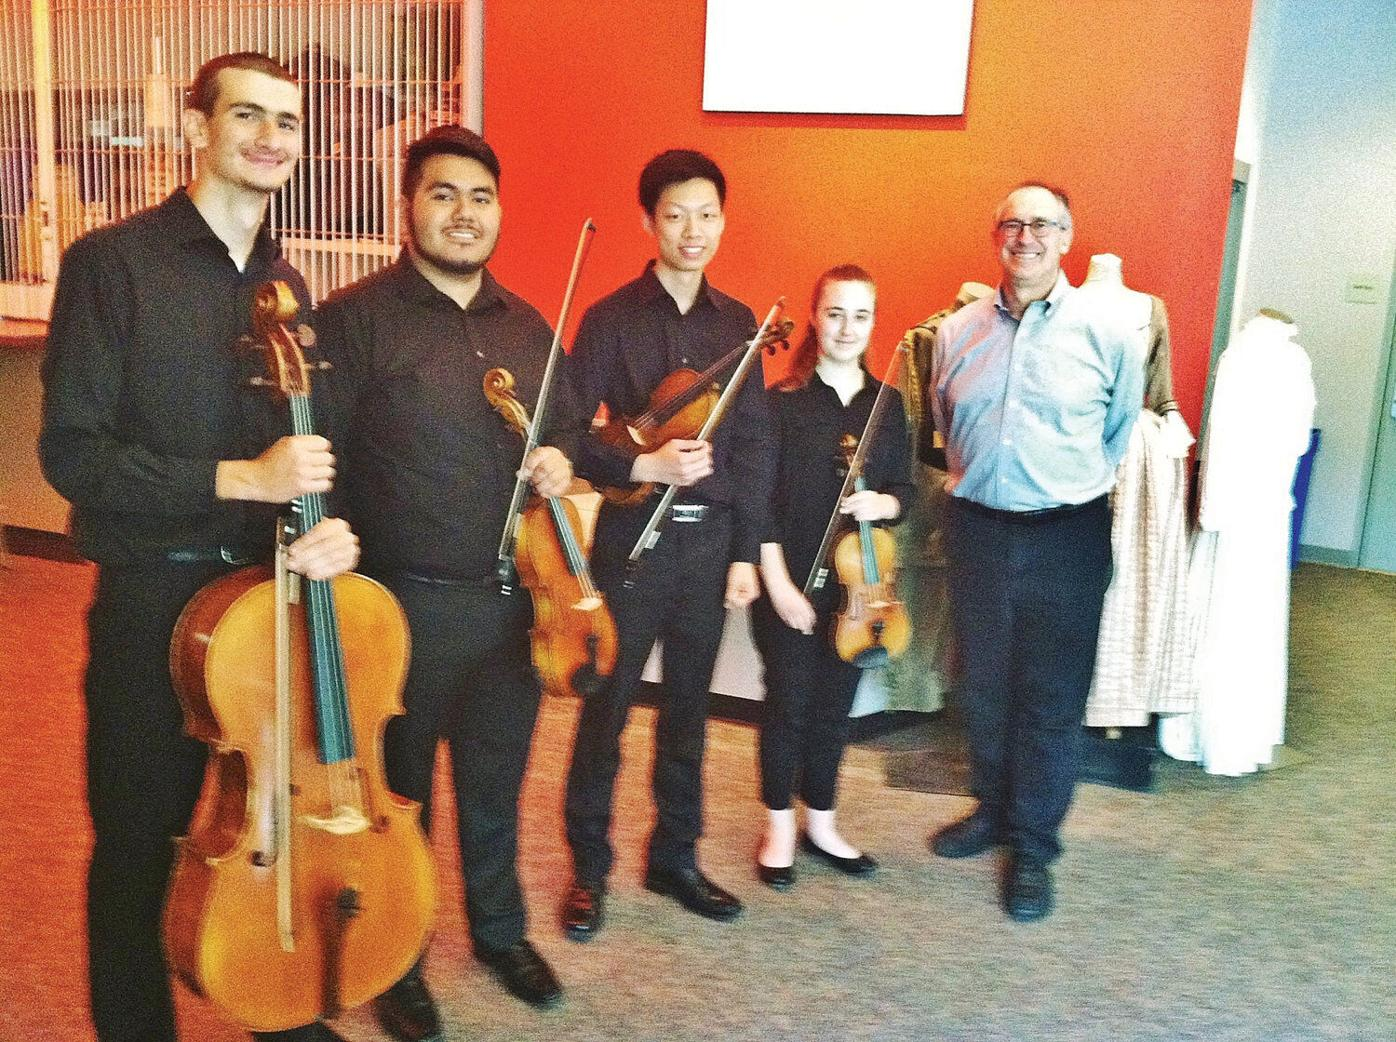 Pittsfield High string quartet channels a dark but defiant corner of music history in 'Playing for Our Lives'